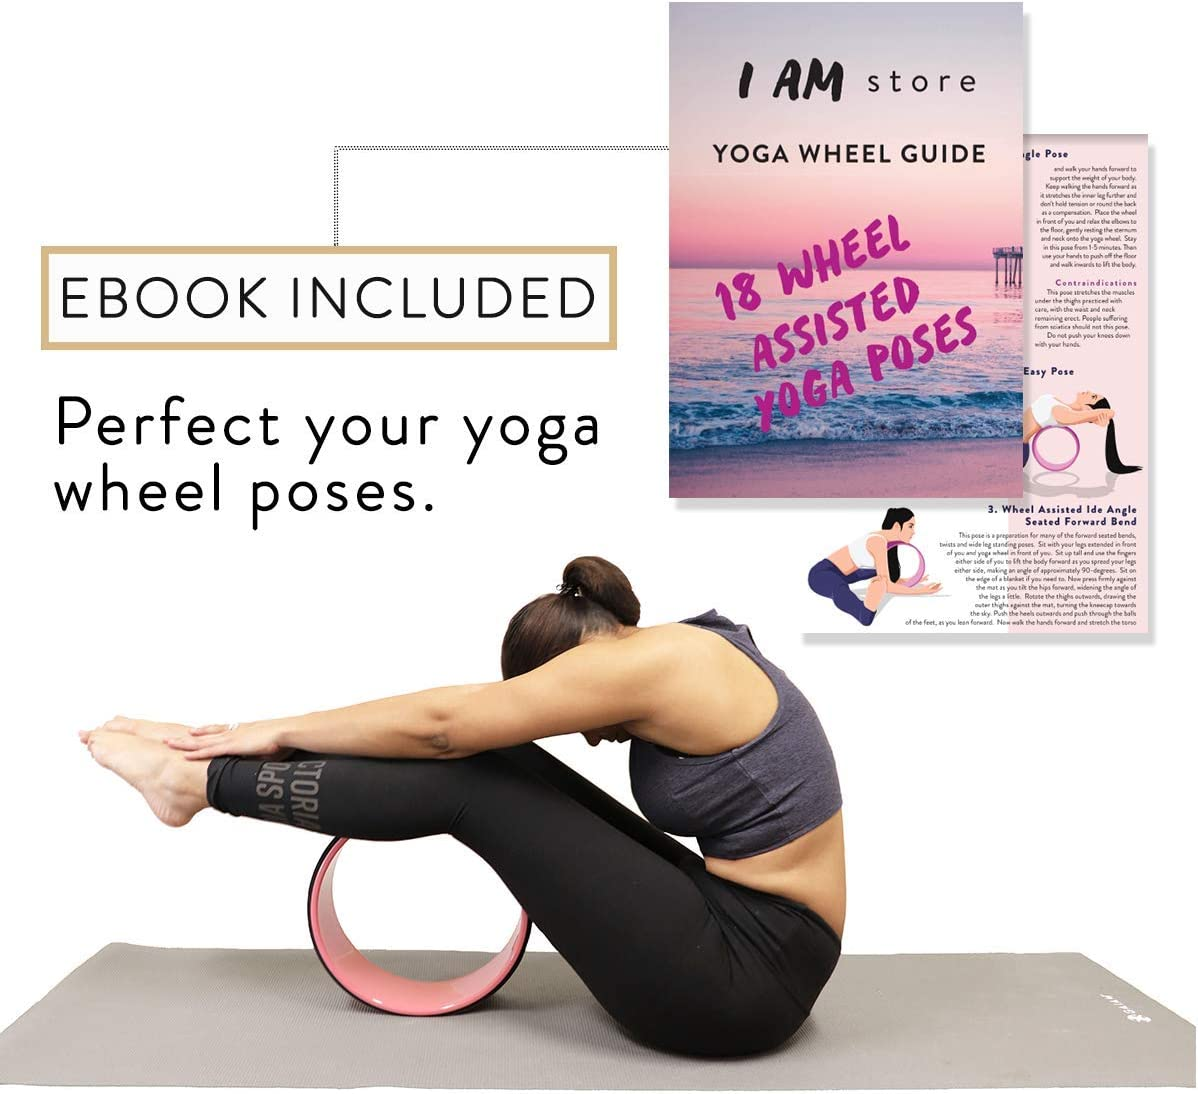 Dharma Cork Yoga Wheel Strong & Comfortable Accessory for Stretching & Flexibility by I AM Store ● Perfect Prop to improve Headstands & Backbends ● ...